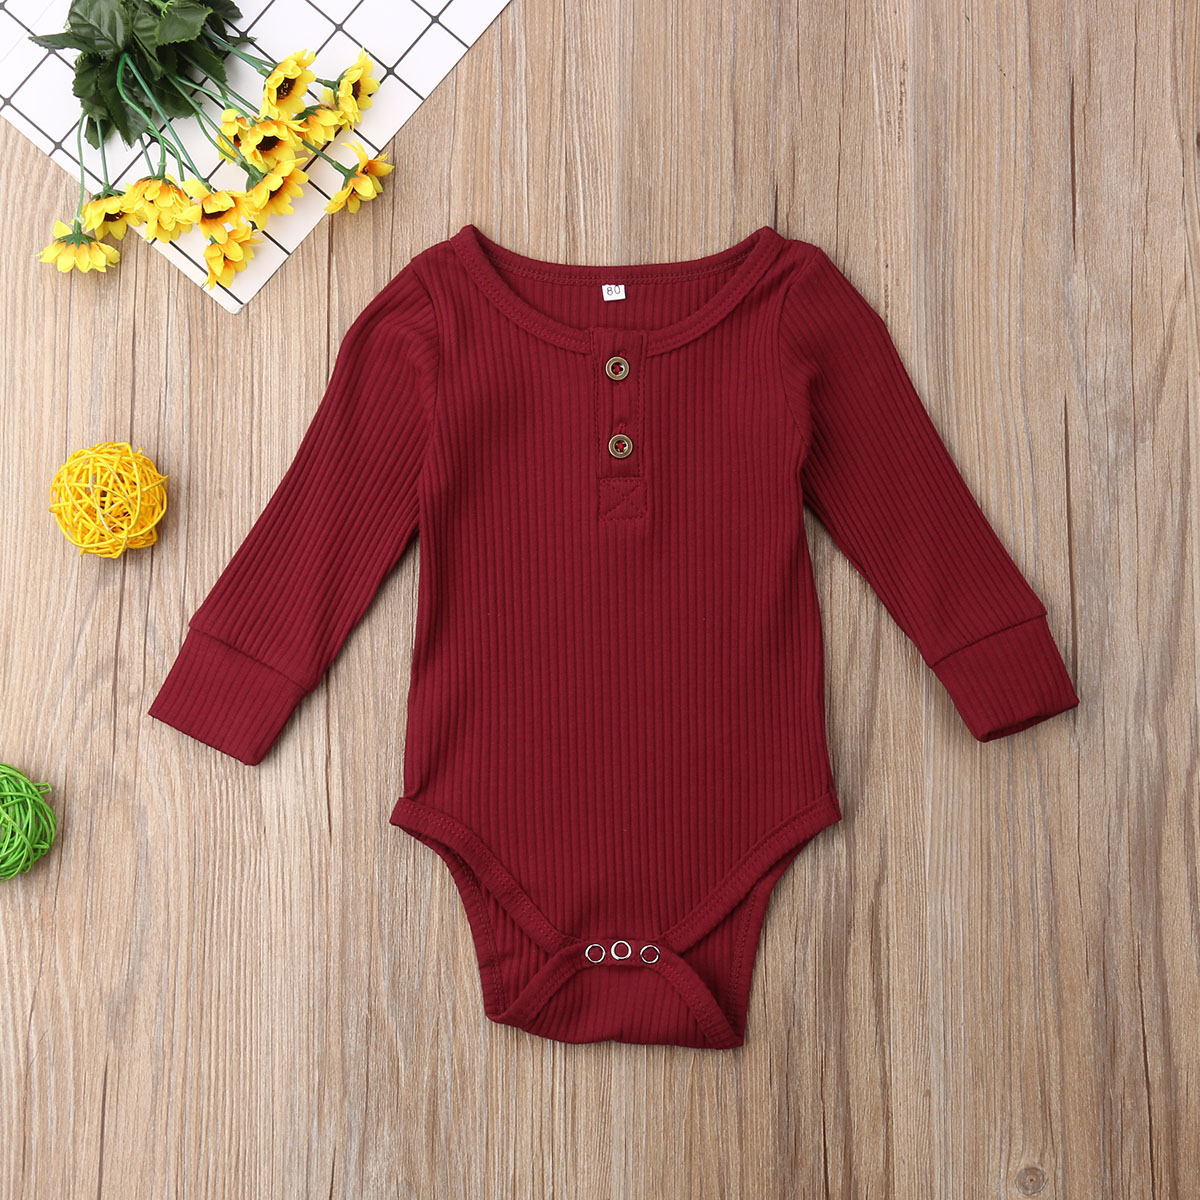 baby girl clothes autumn lattice knitted baby clothes newborn baby girl romper cotton baby cardigan sweater romper jumpsuit Newborn Baby Boy Girl Clothes Solid Color Long Sleeve Knitted Cotton Button Romper Jumpsuit Outfit Baby Clothes